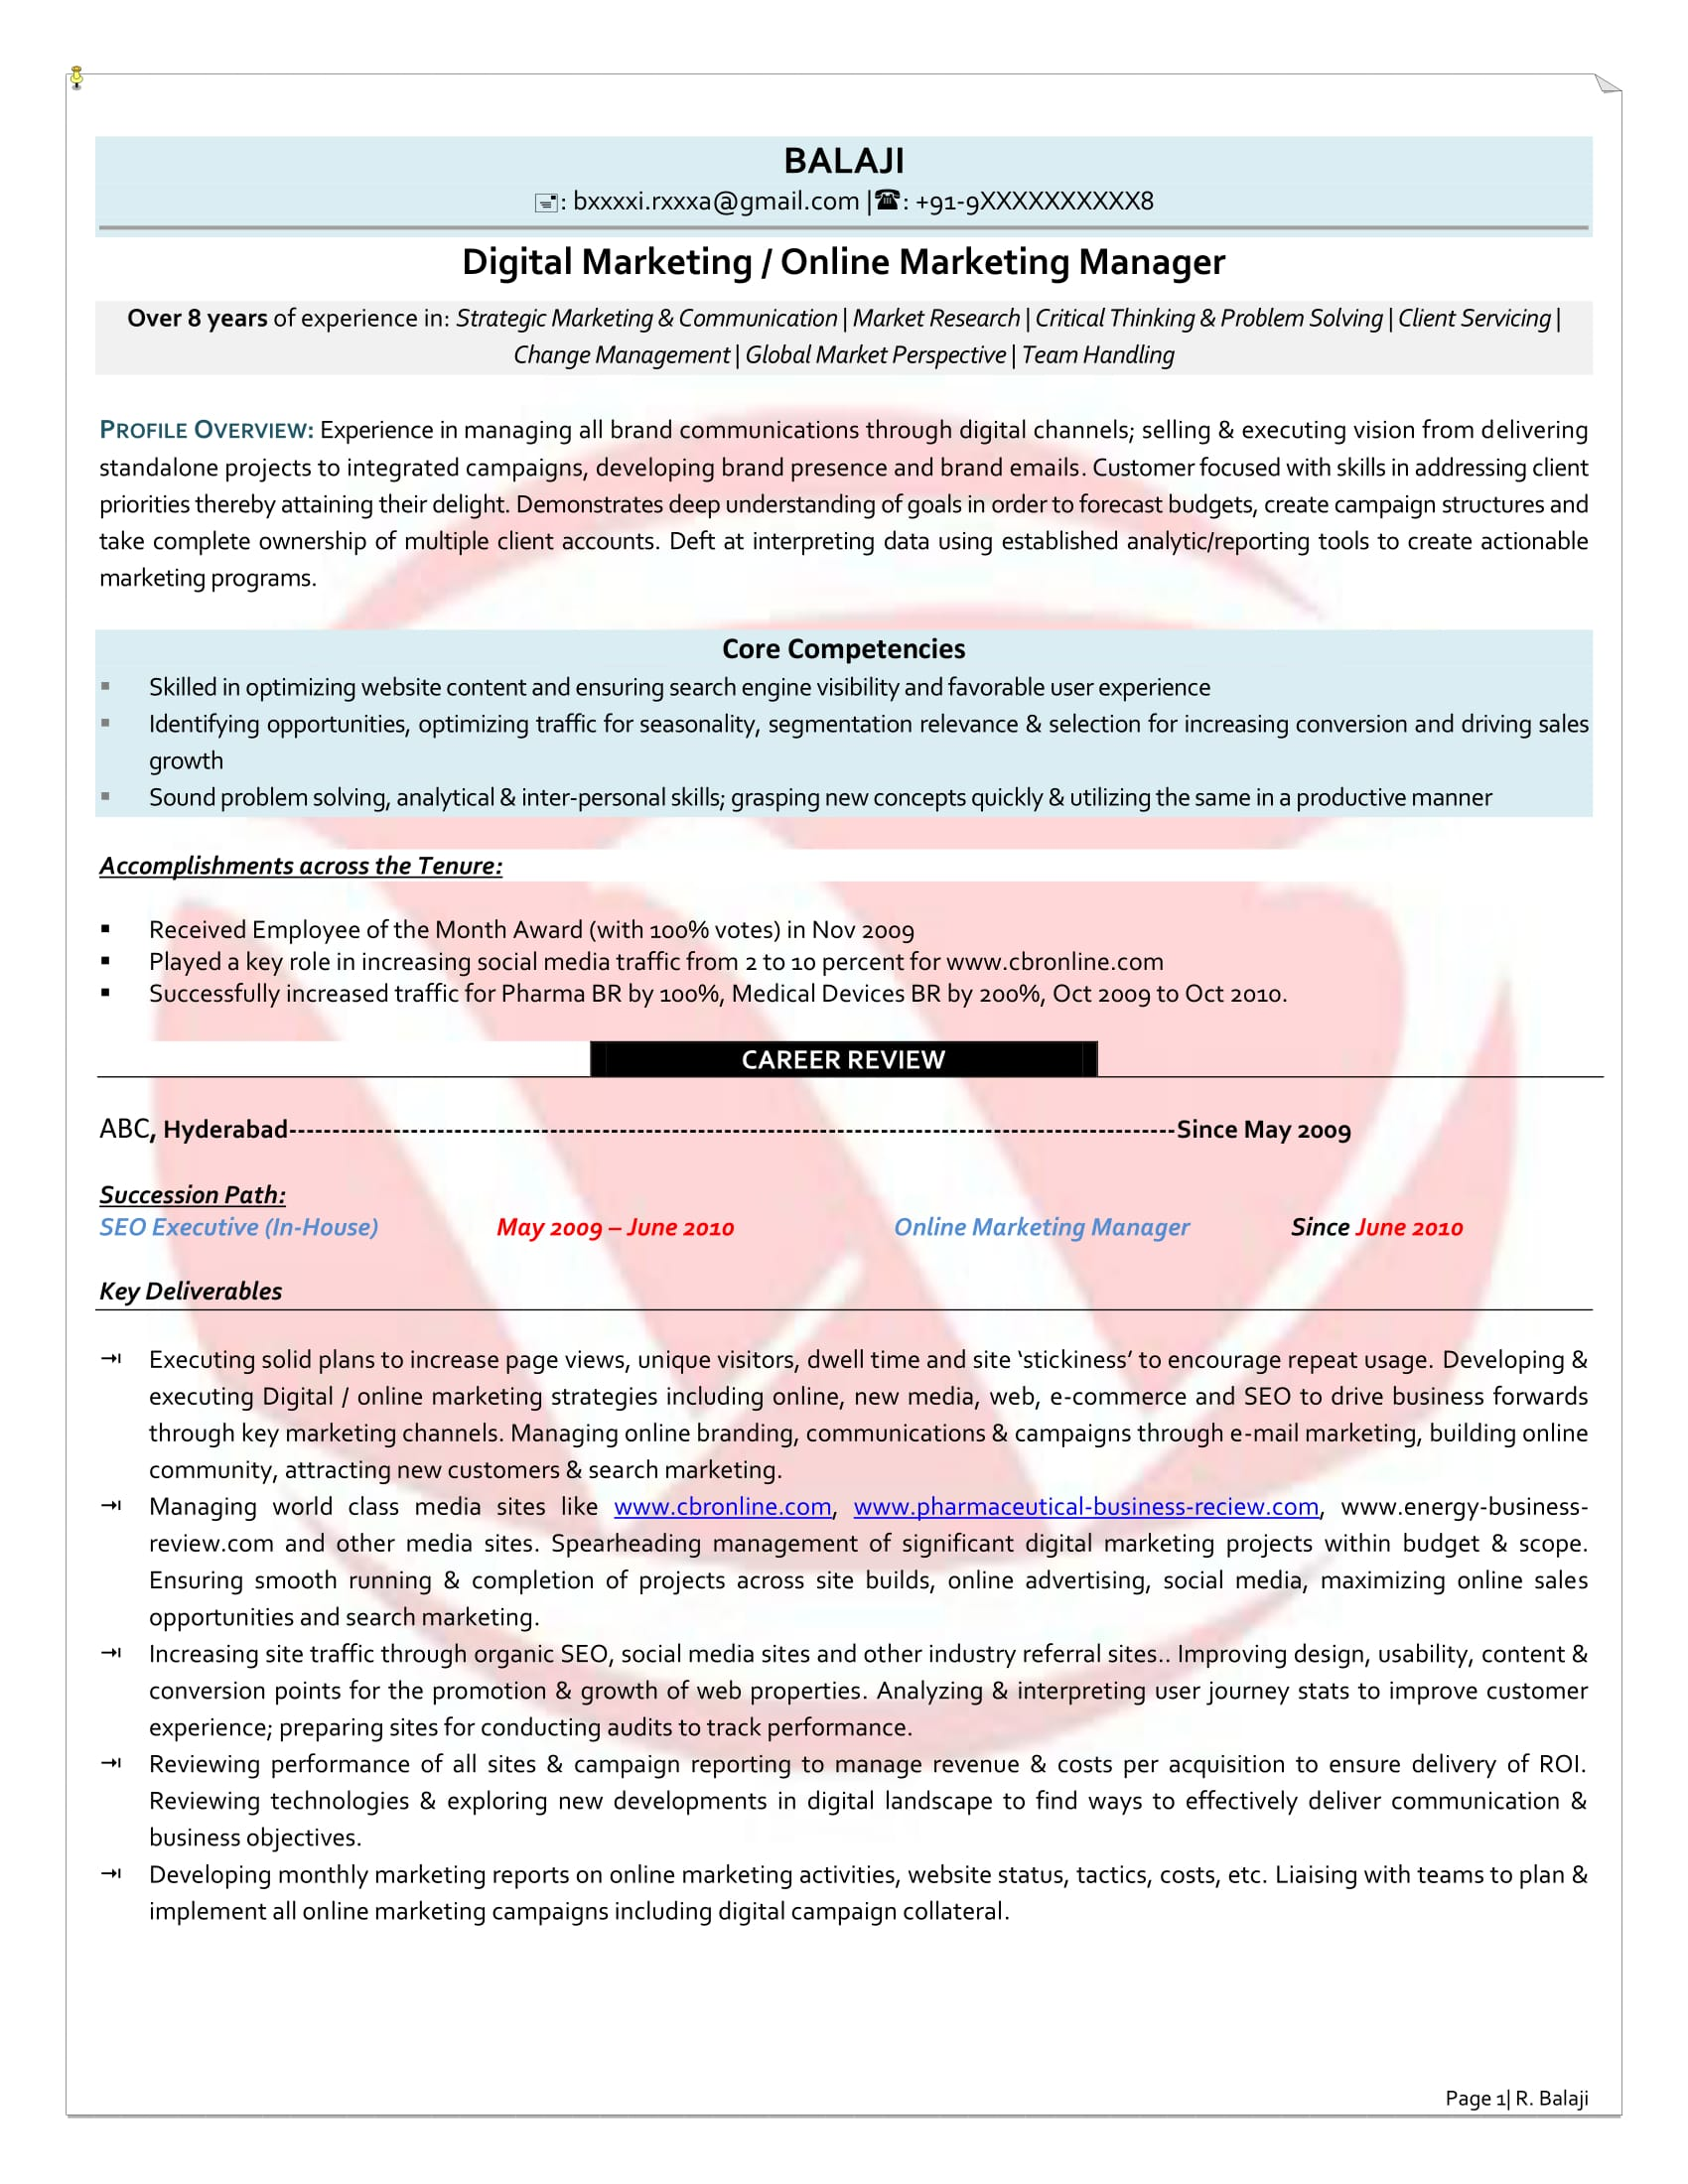 Digital Marketing Sample Resume  Digital Marketing Resumes